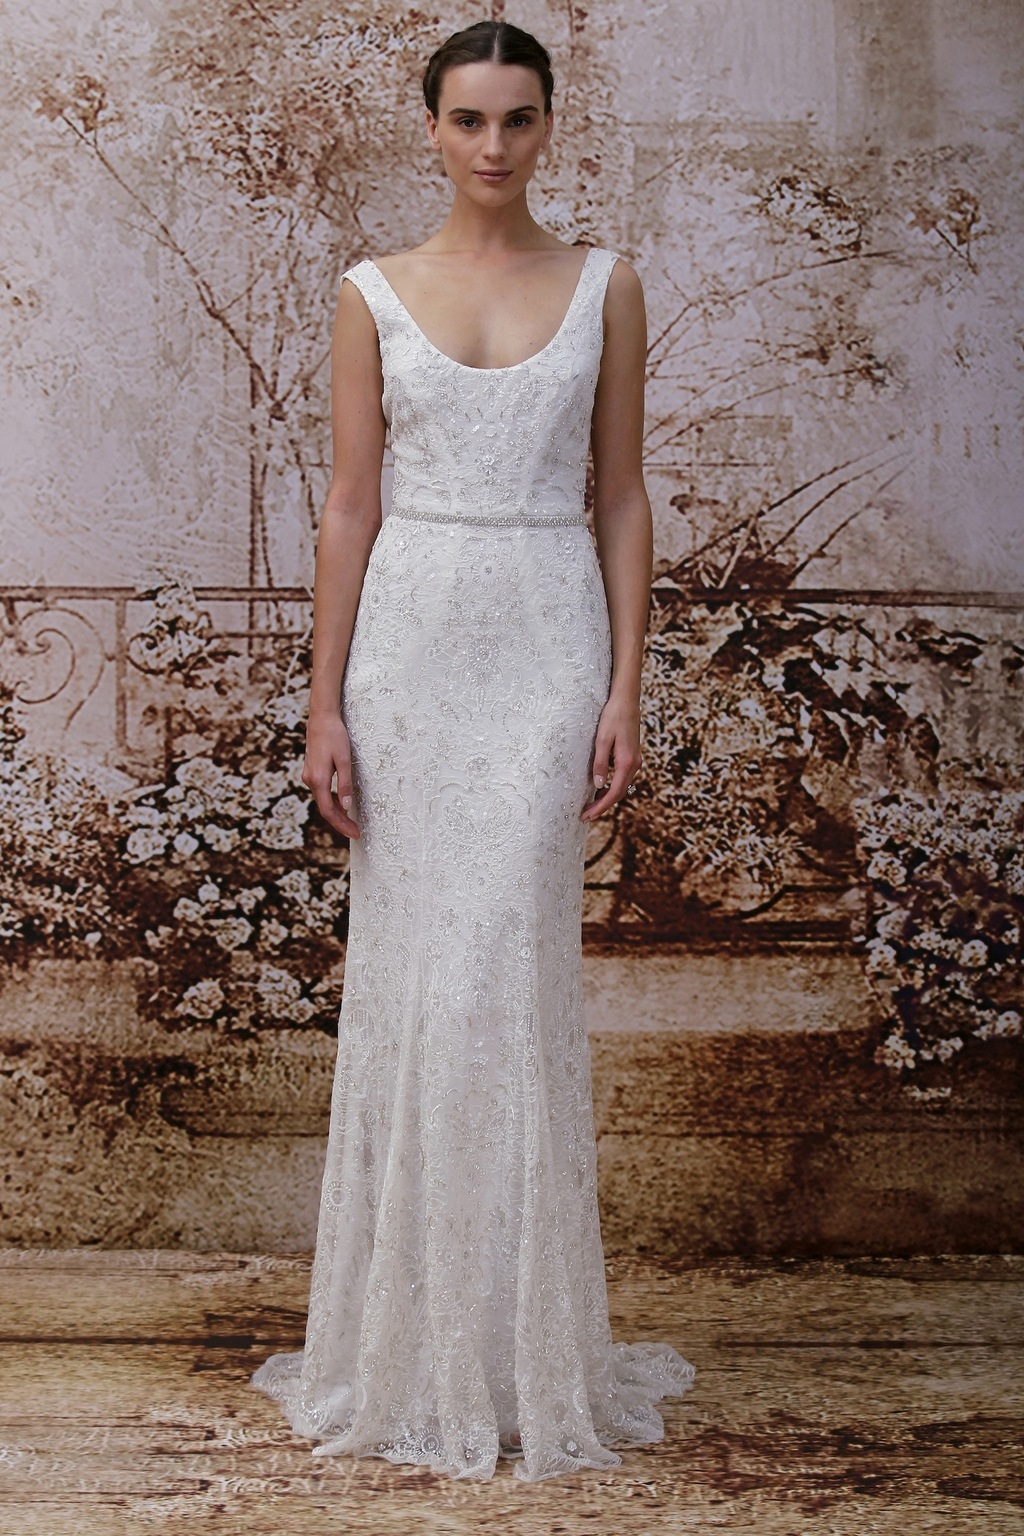 Wedding-dress-by-monique-lhuillier-fall-2014-bridal-look-18.full